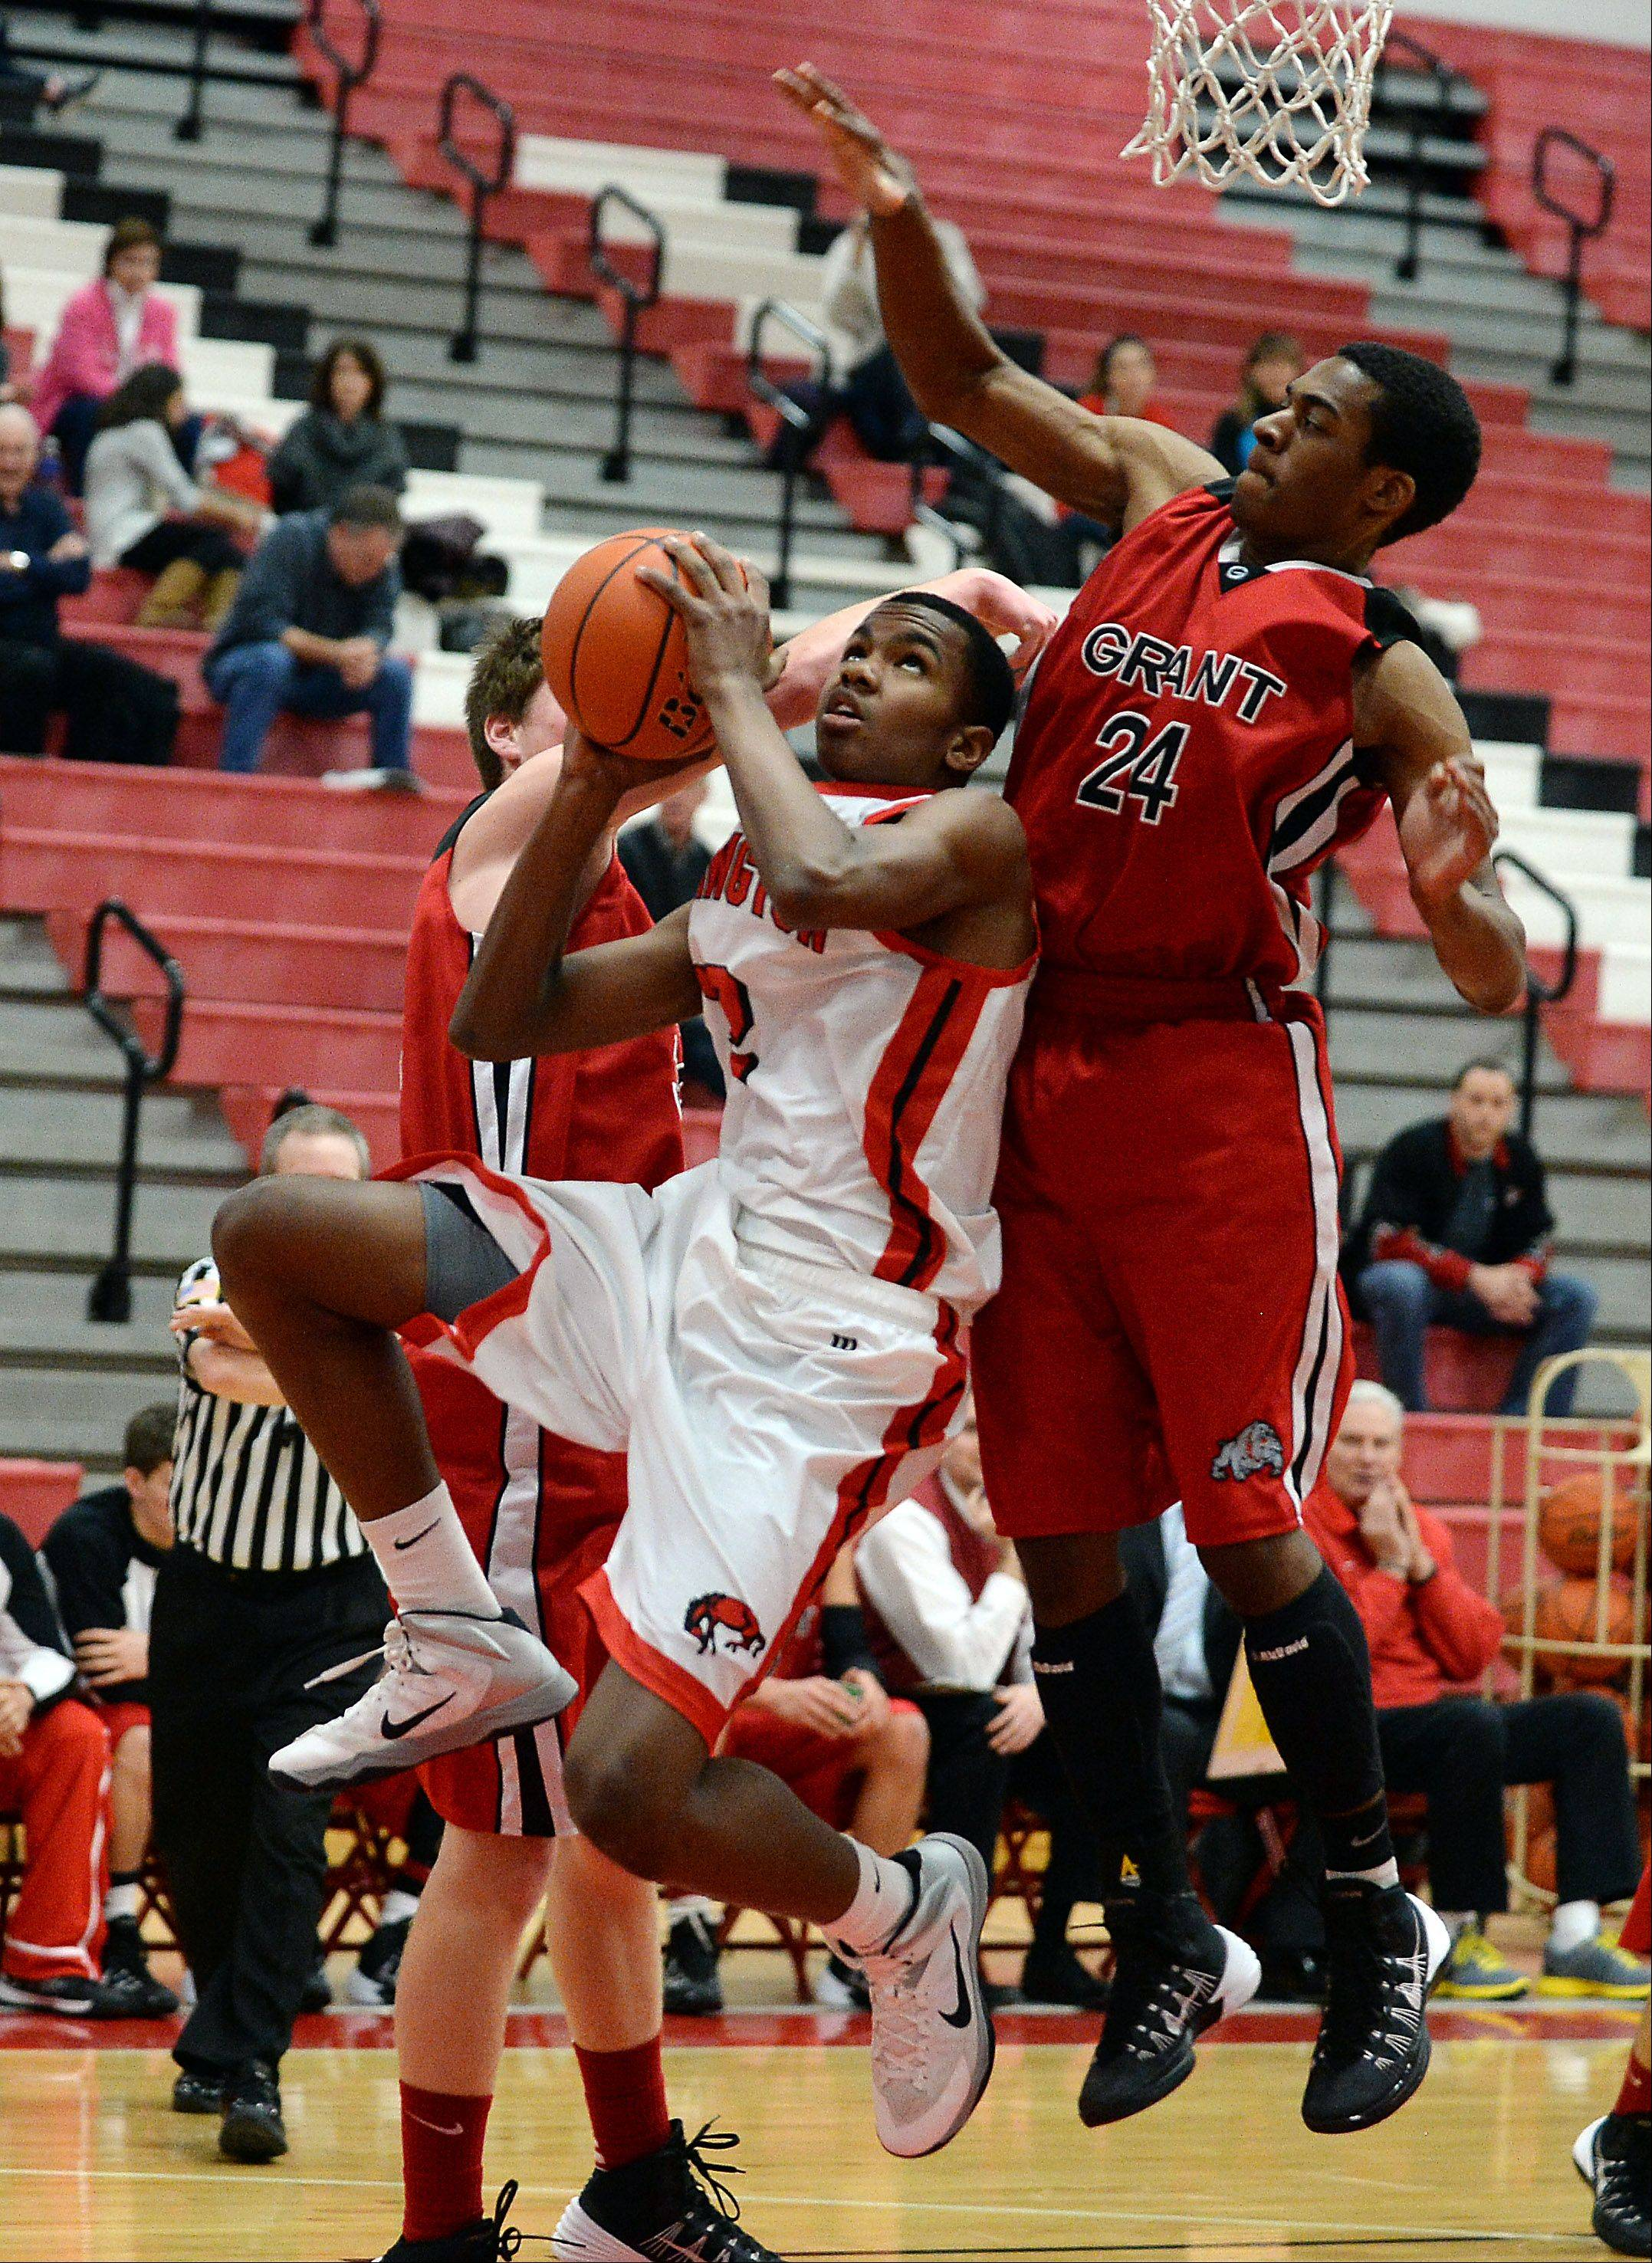 Grant's Mike Burns fouls Barrington's Chris Lester.